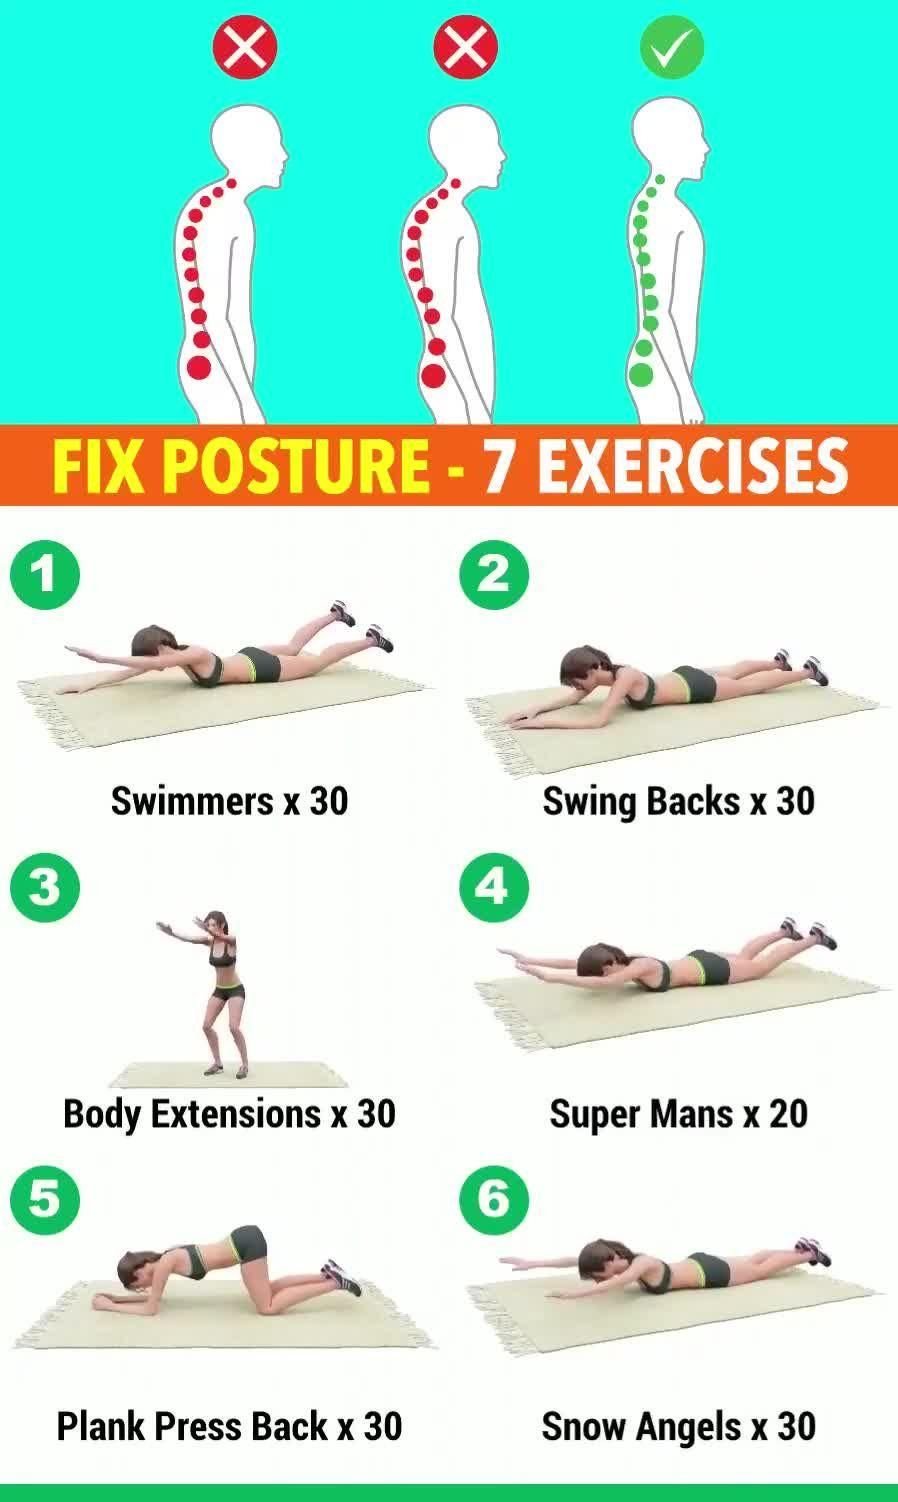 Special exercises for a straight body